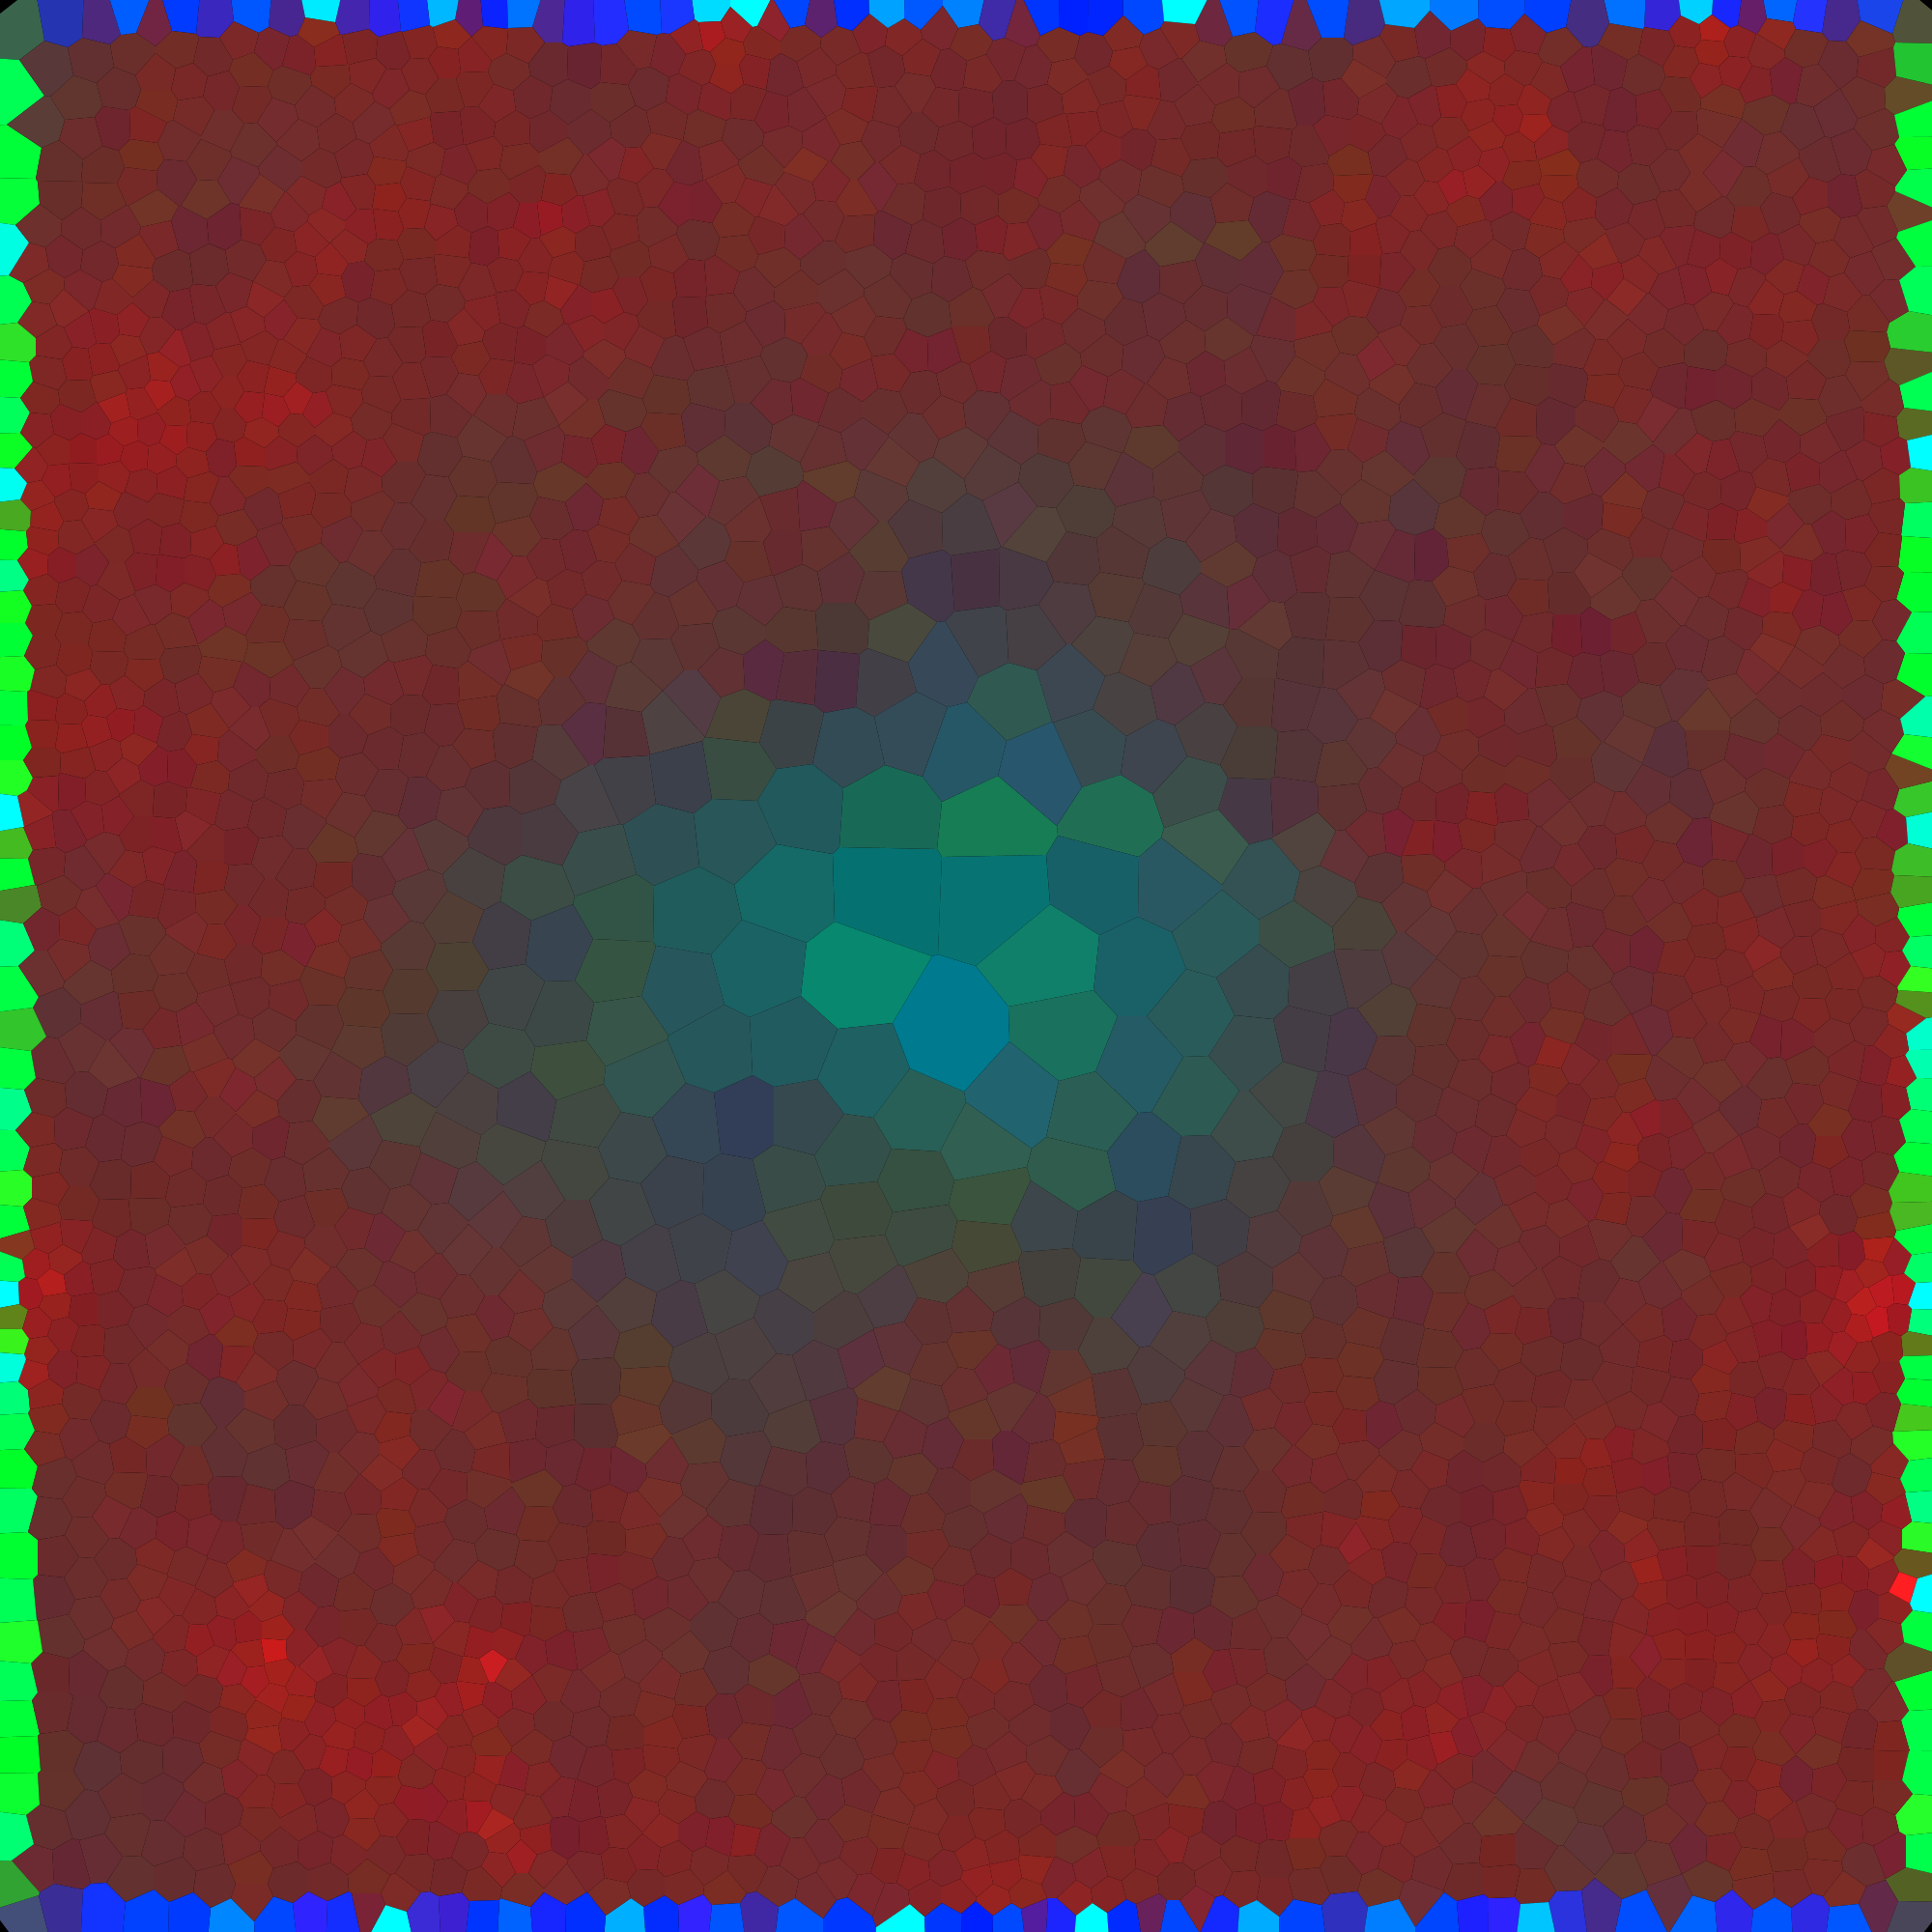 1462120690654.png